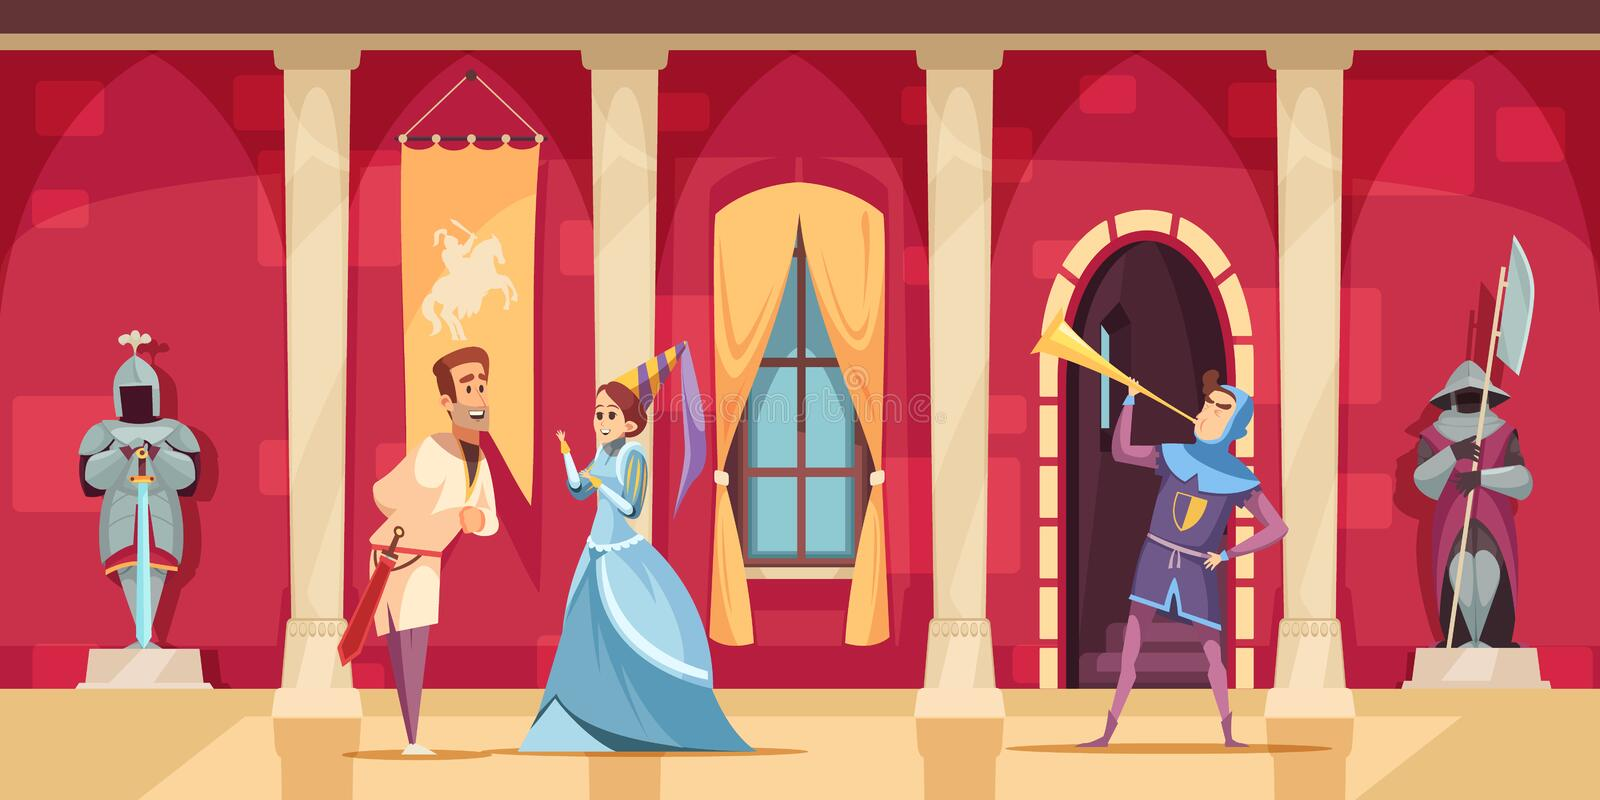 Castle Interior People Cartoon stock illustration